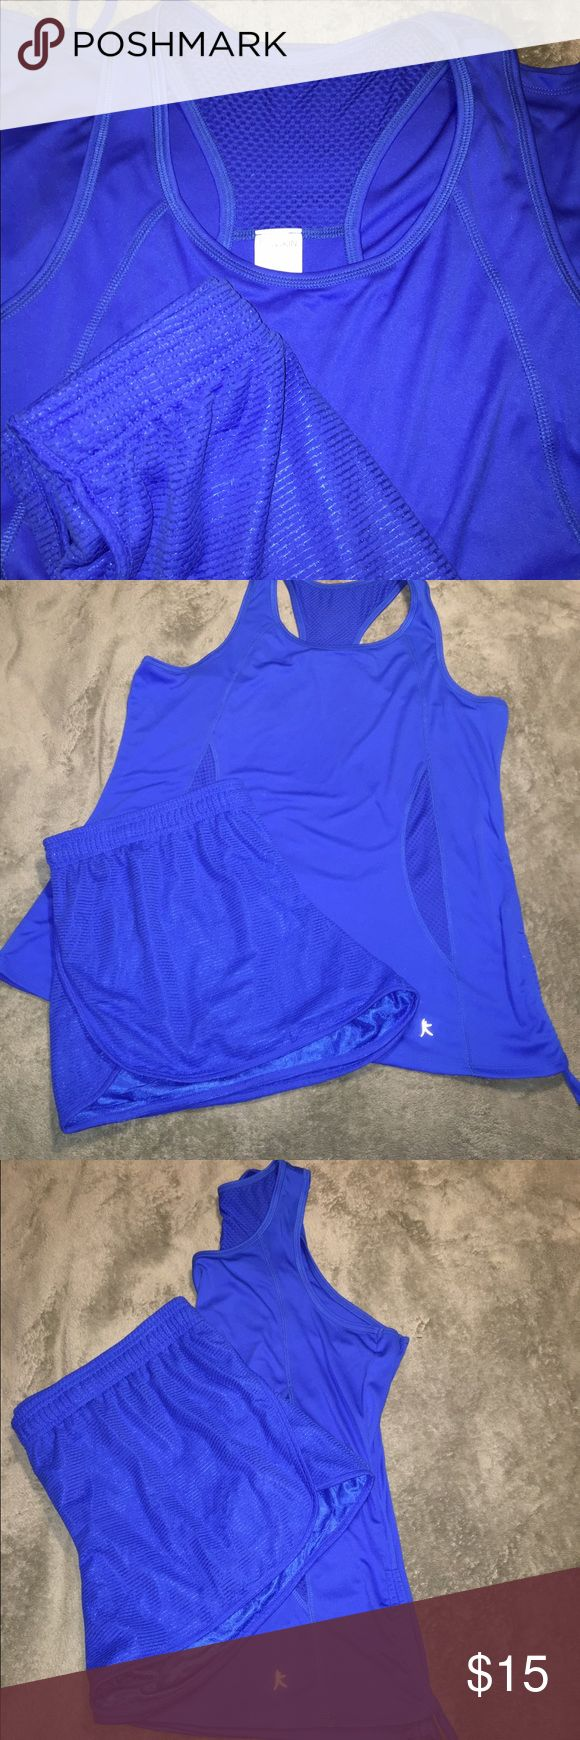 Royal blue Danskin workout outfit Brand-new without tags's top and shorts. Top has two drawstrings on each side shorts have drawstring at the top. Royal blue, 100% polyester and shorts are fully lined. Danskin Now Tops Tank Tops